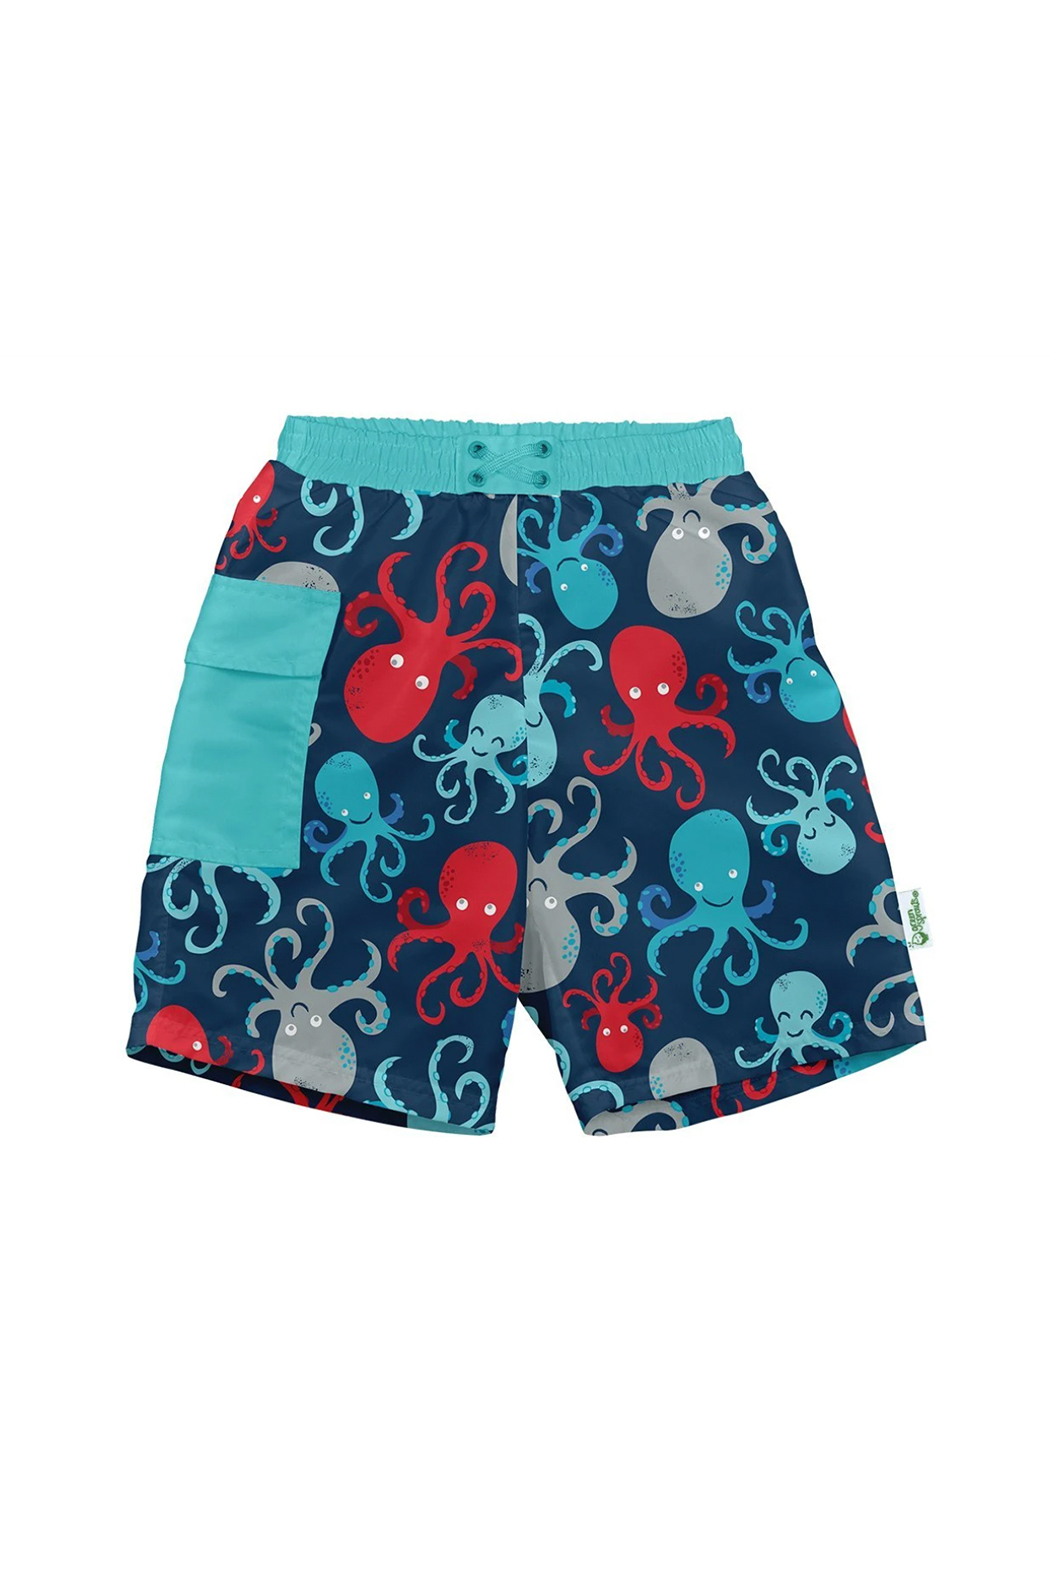 Green Sprouts Pocket Trunks with Built-in Reusable Absorbent Swim Diaper - Main Image